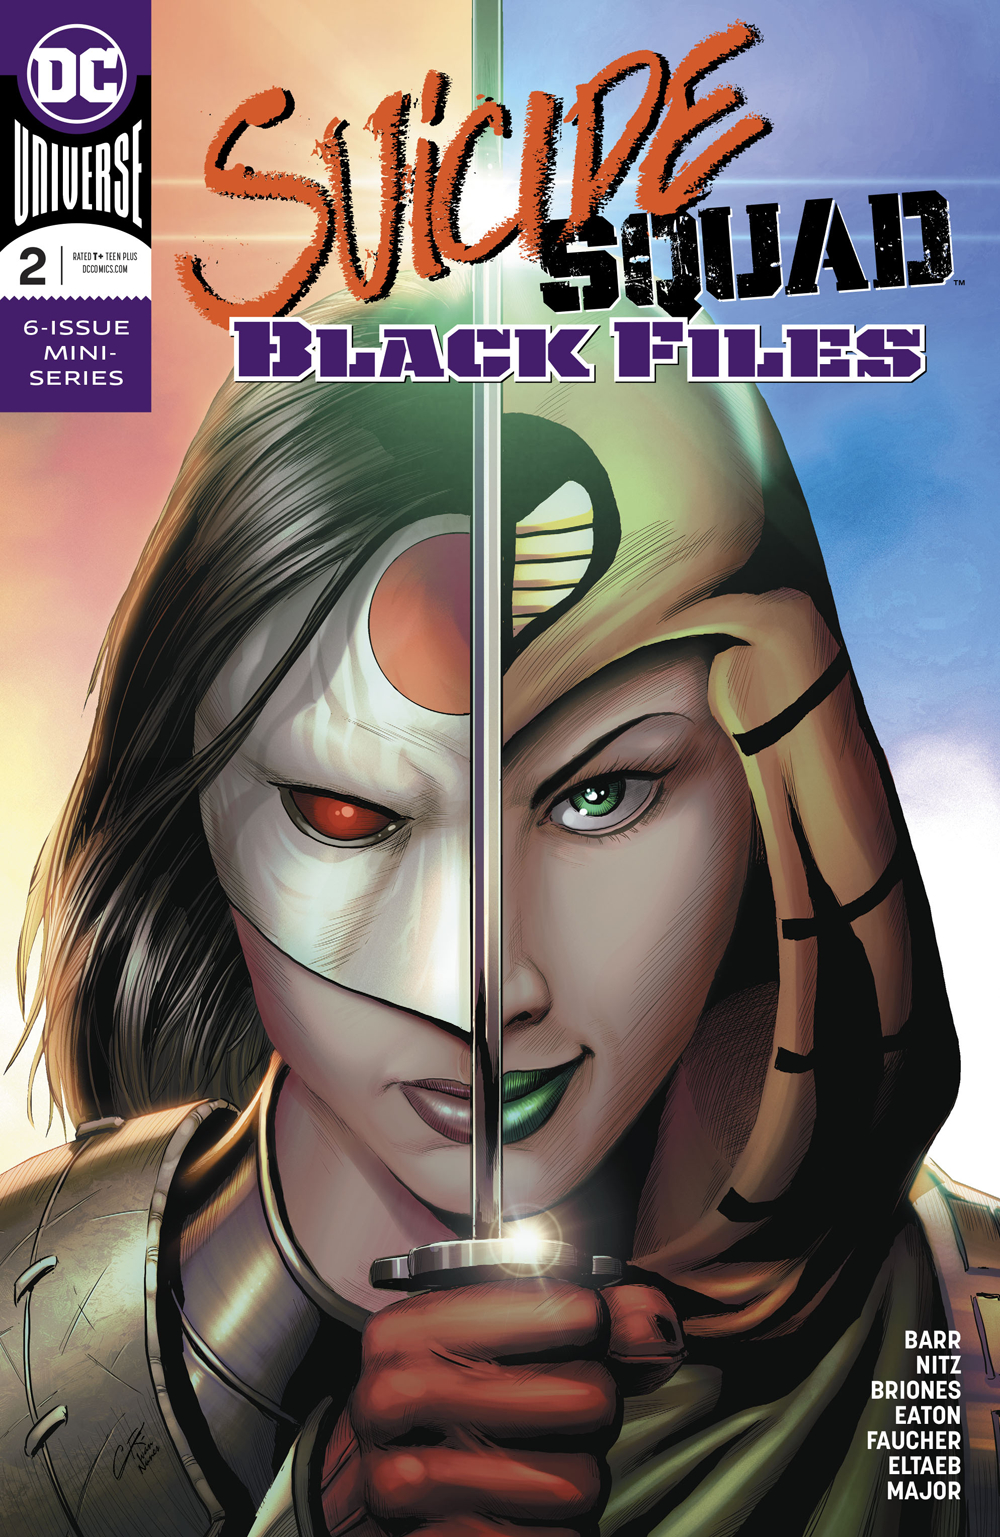 SUICIDE SQUAD BLACK FILES #2 (OF 6) (RES)